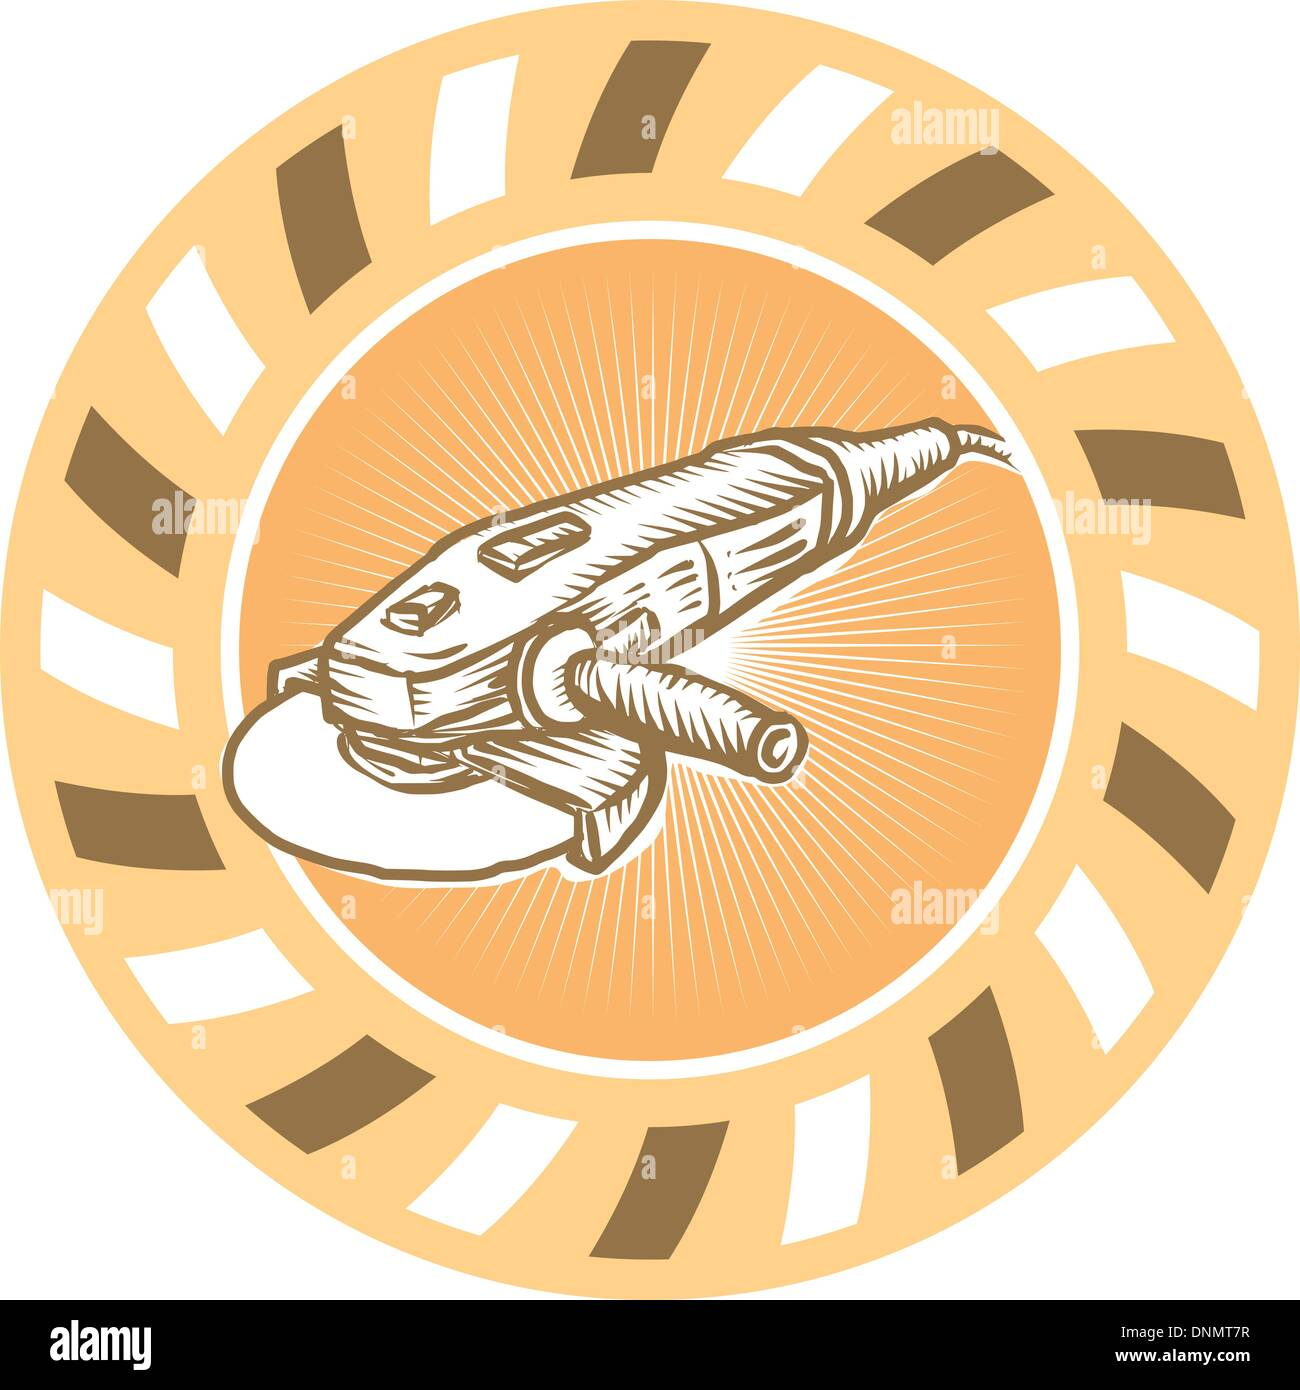 Illustration of a angle grinder also known as a side grinder or disc grinder powertool set inside circle with sunburst done in retro style. - Stock Vector